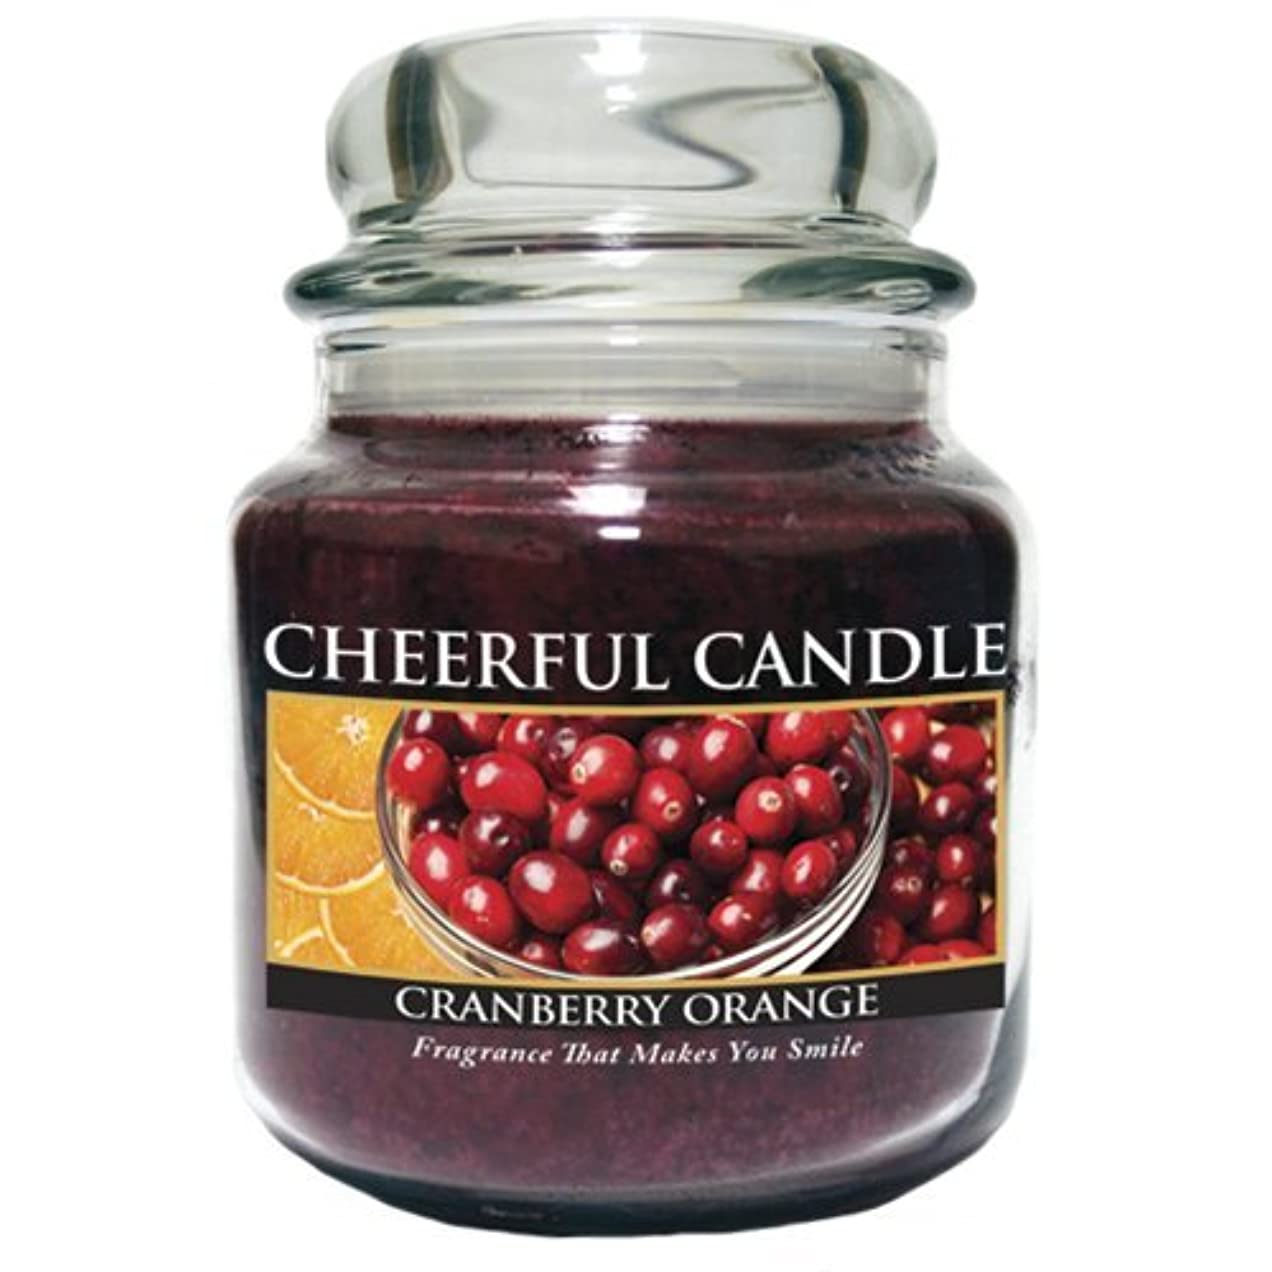 すなわち気がついて進化A Cheerful Giver Cranberry Orange Jar Candle, 24-Ounce by Cheerful Giver [並行輸入品]